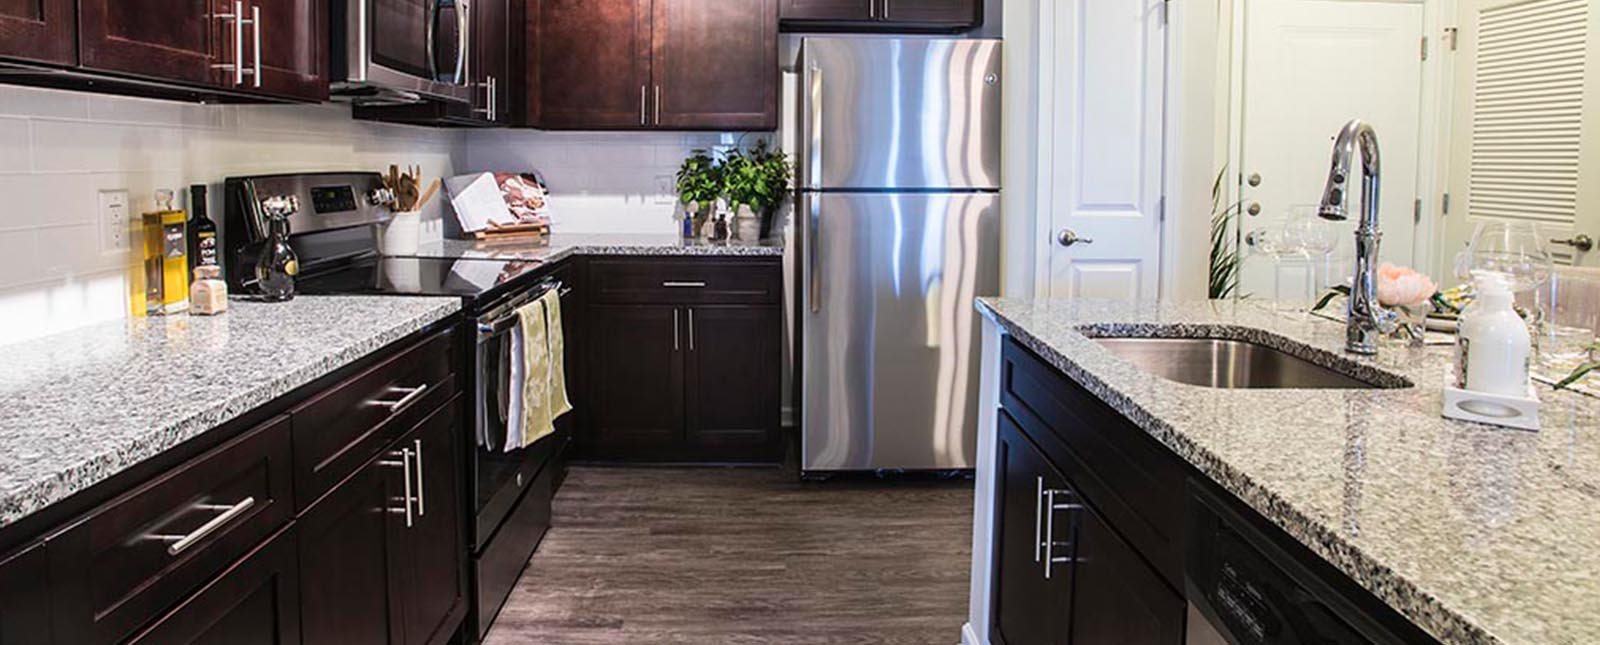 Kitchen countertop of The Haven luxury apartments in Malvern, PA